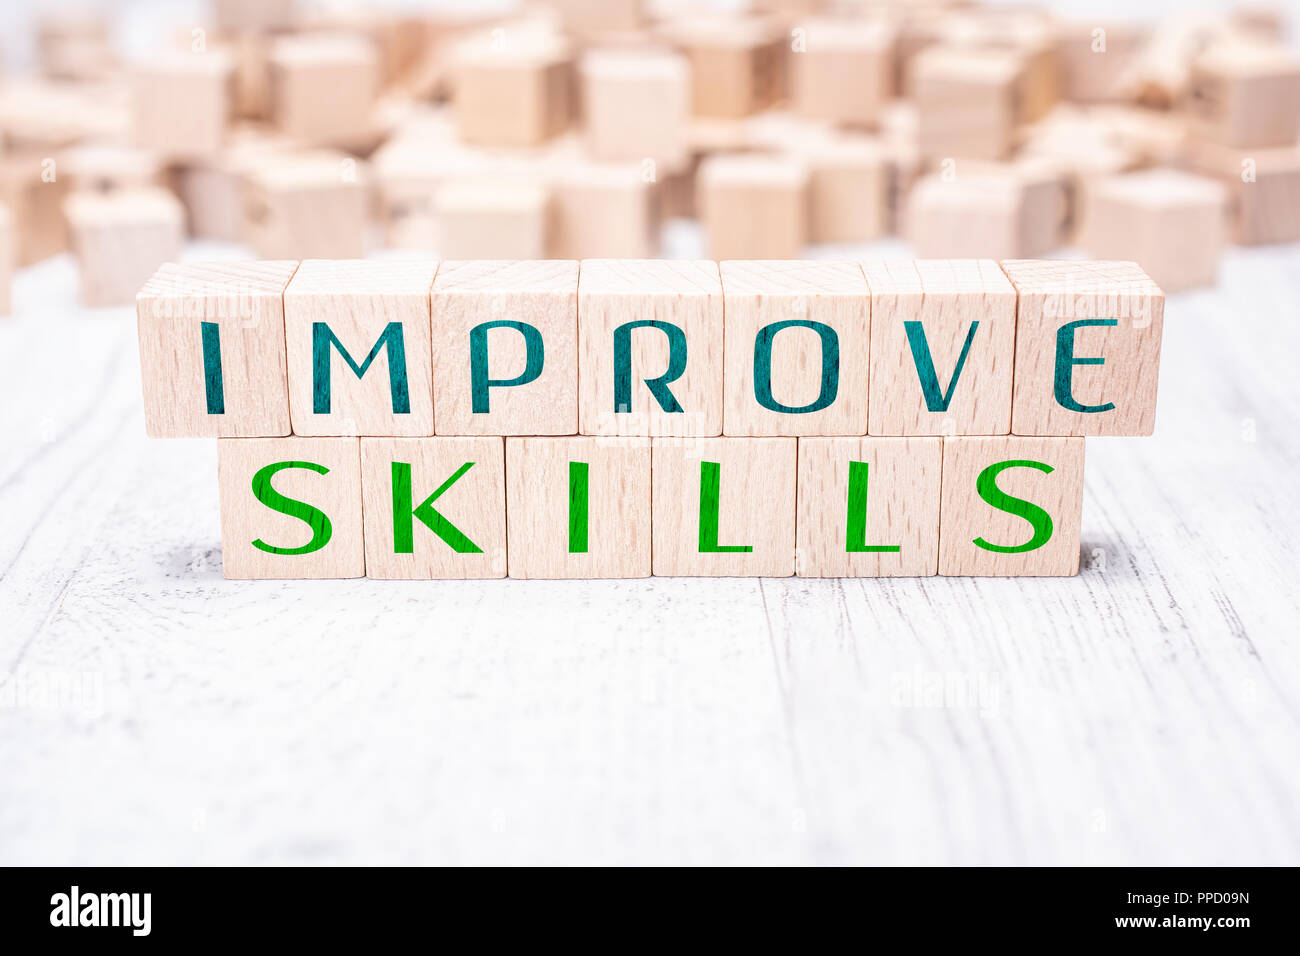 The Words Improve Skills Formed By Wooden Blocks On A White Table - Stock Image